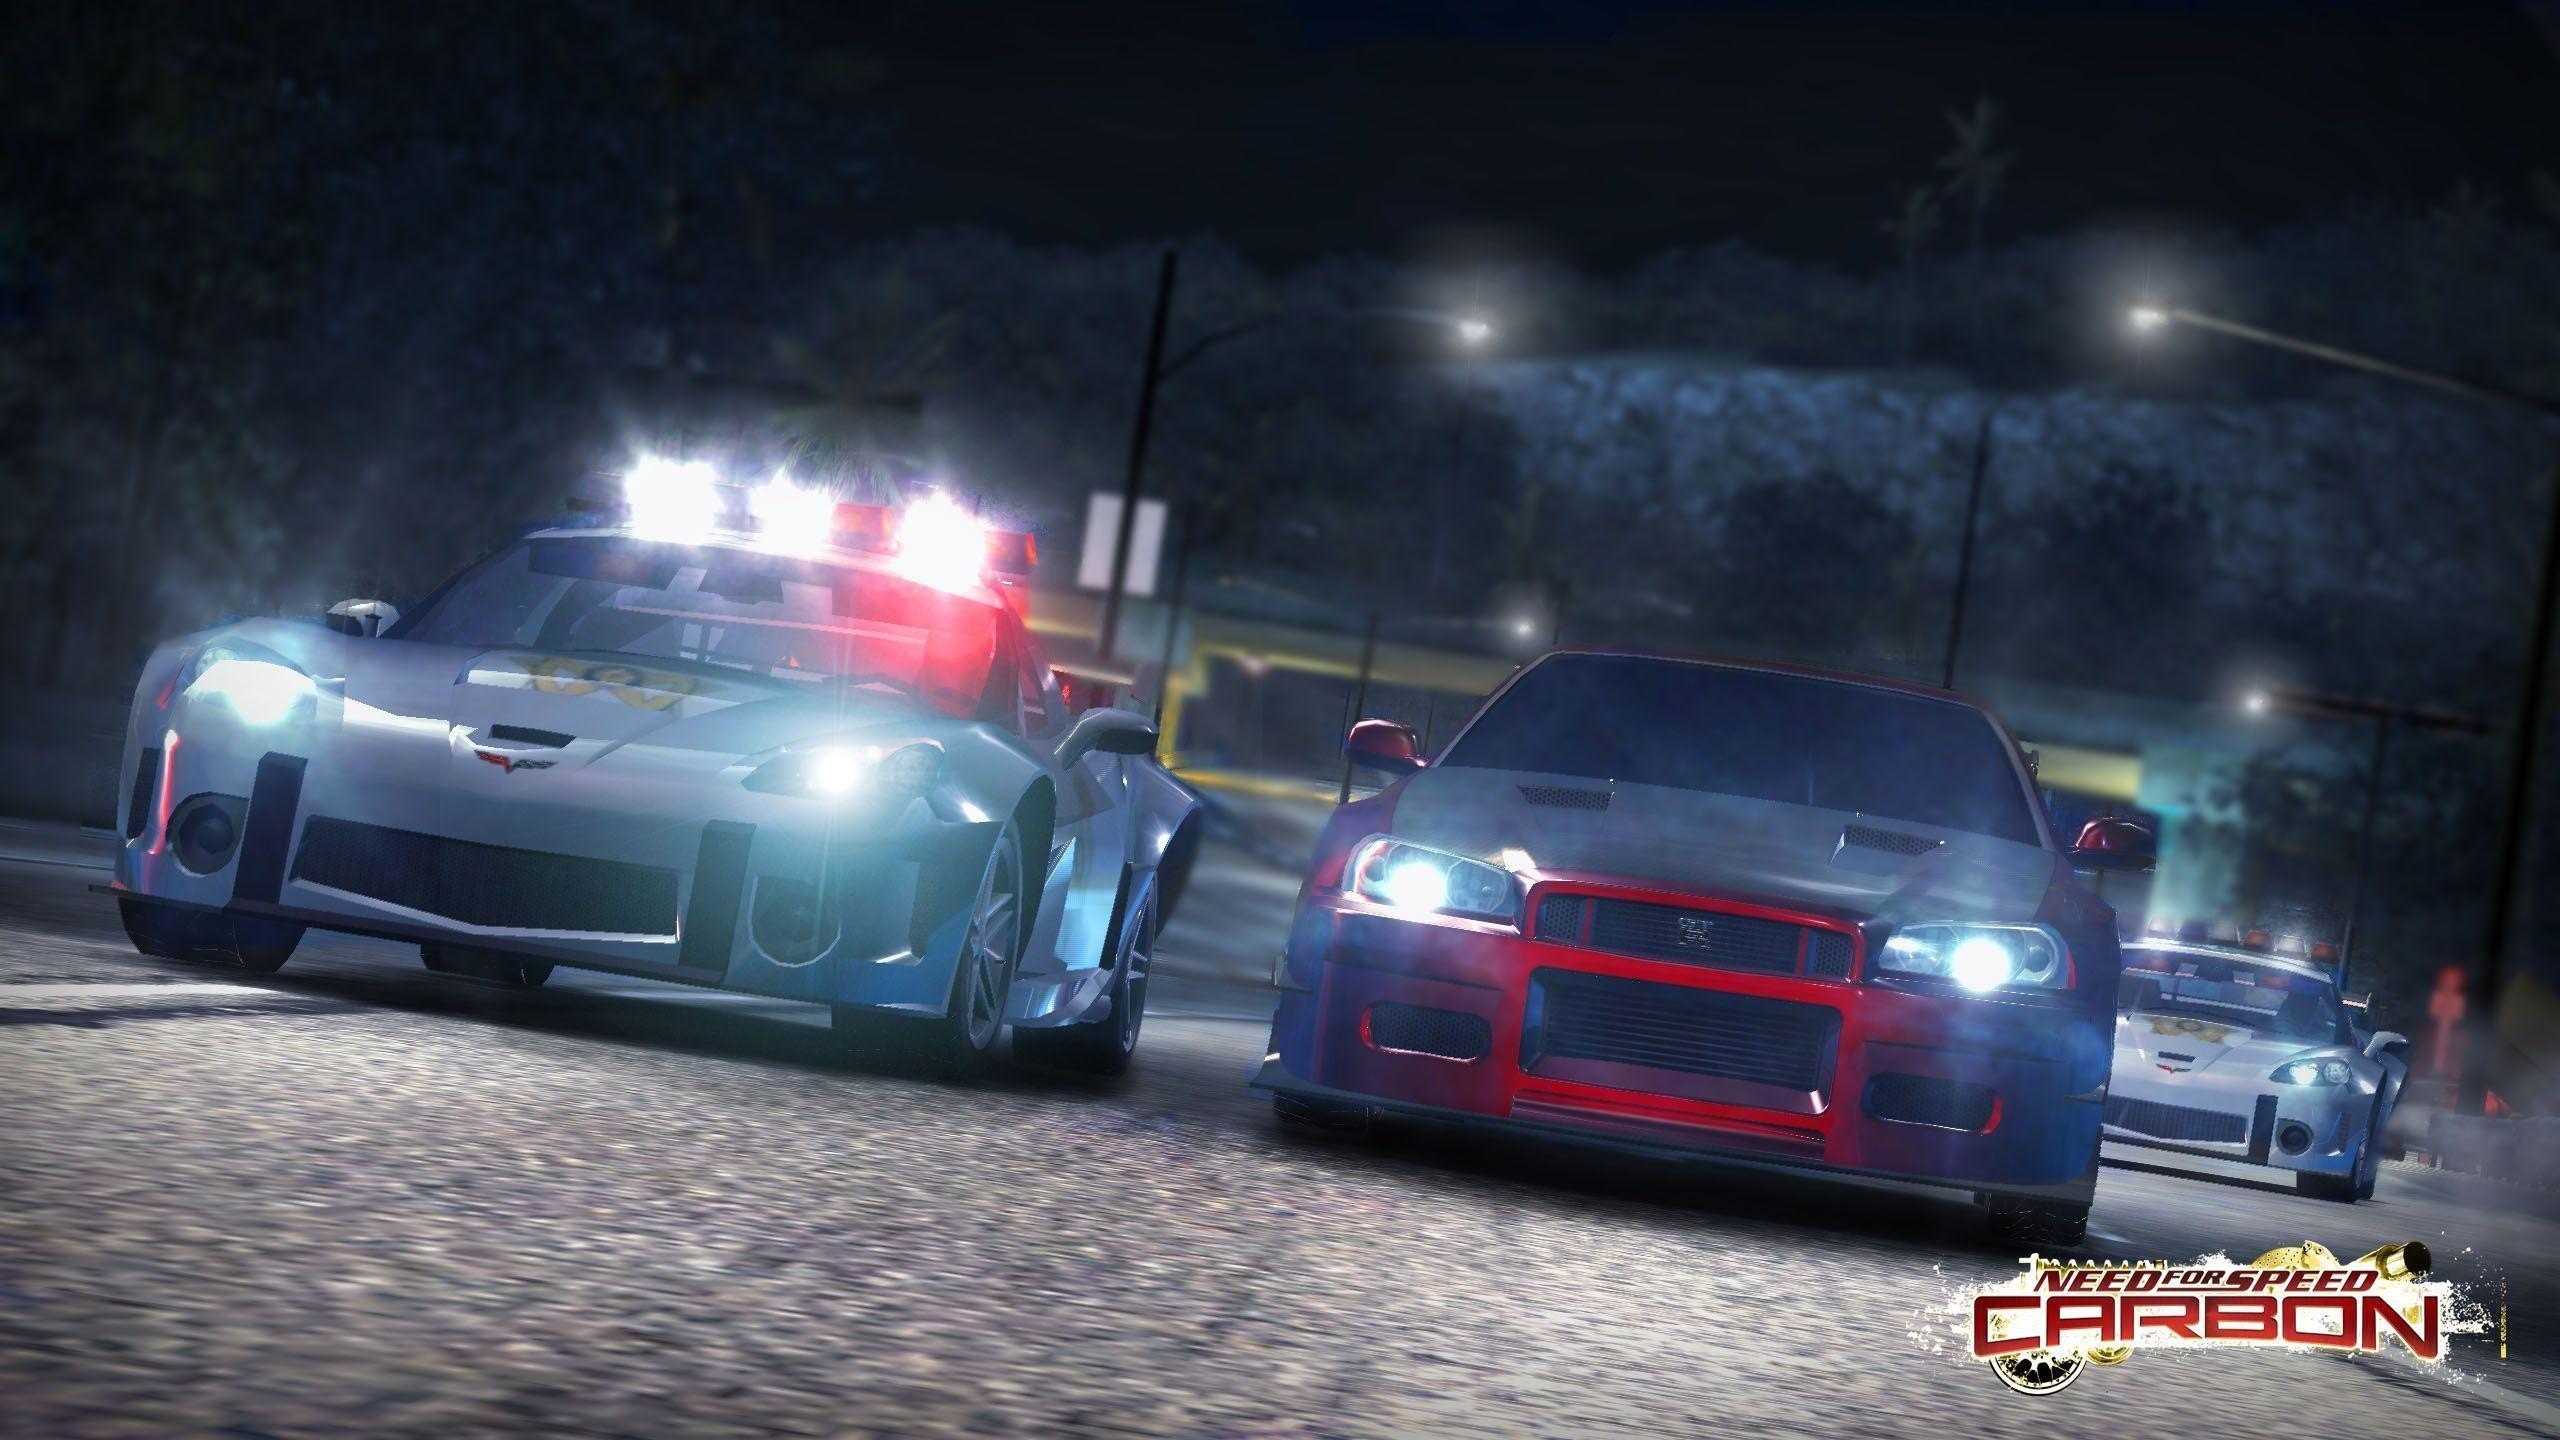 2560x1440  Need for Speed Carbon Wallpaper Cars Saga 640x512PX ~ Wallpaper .